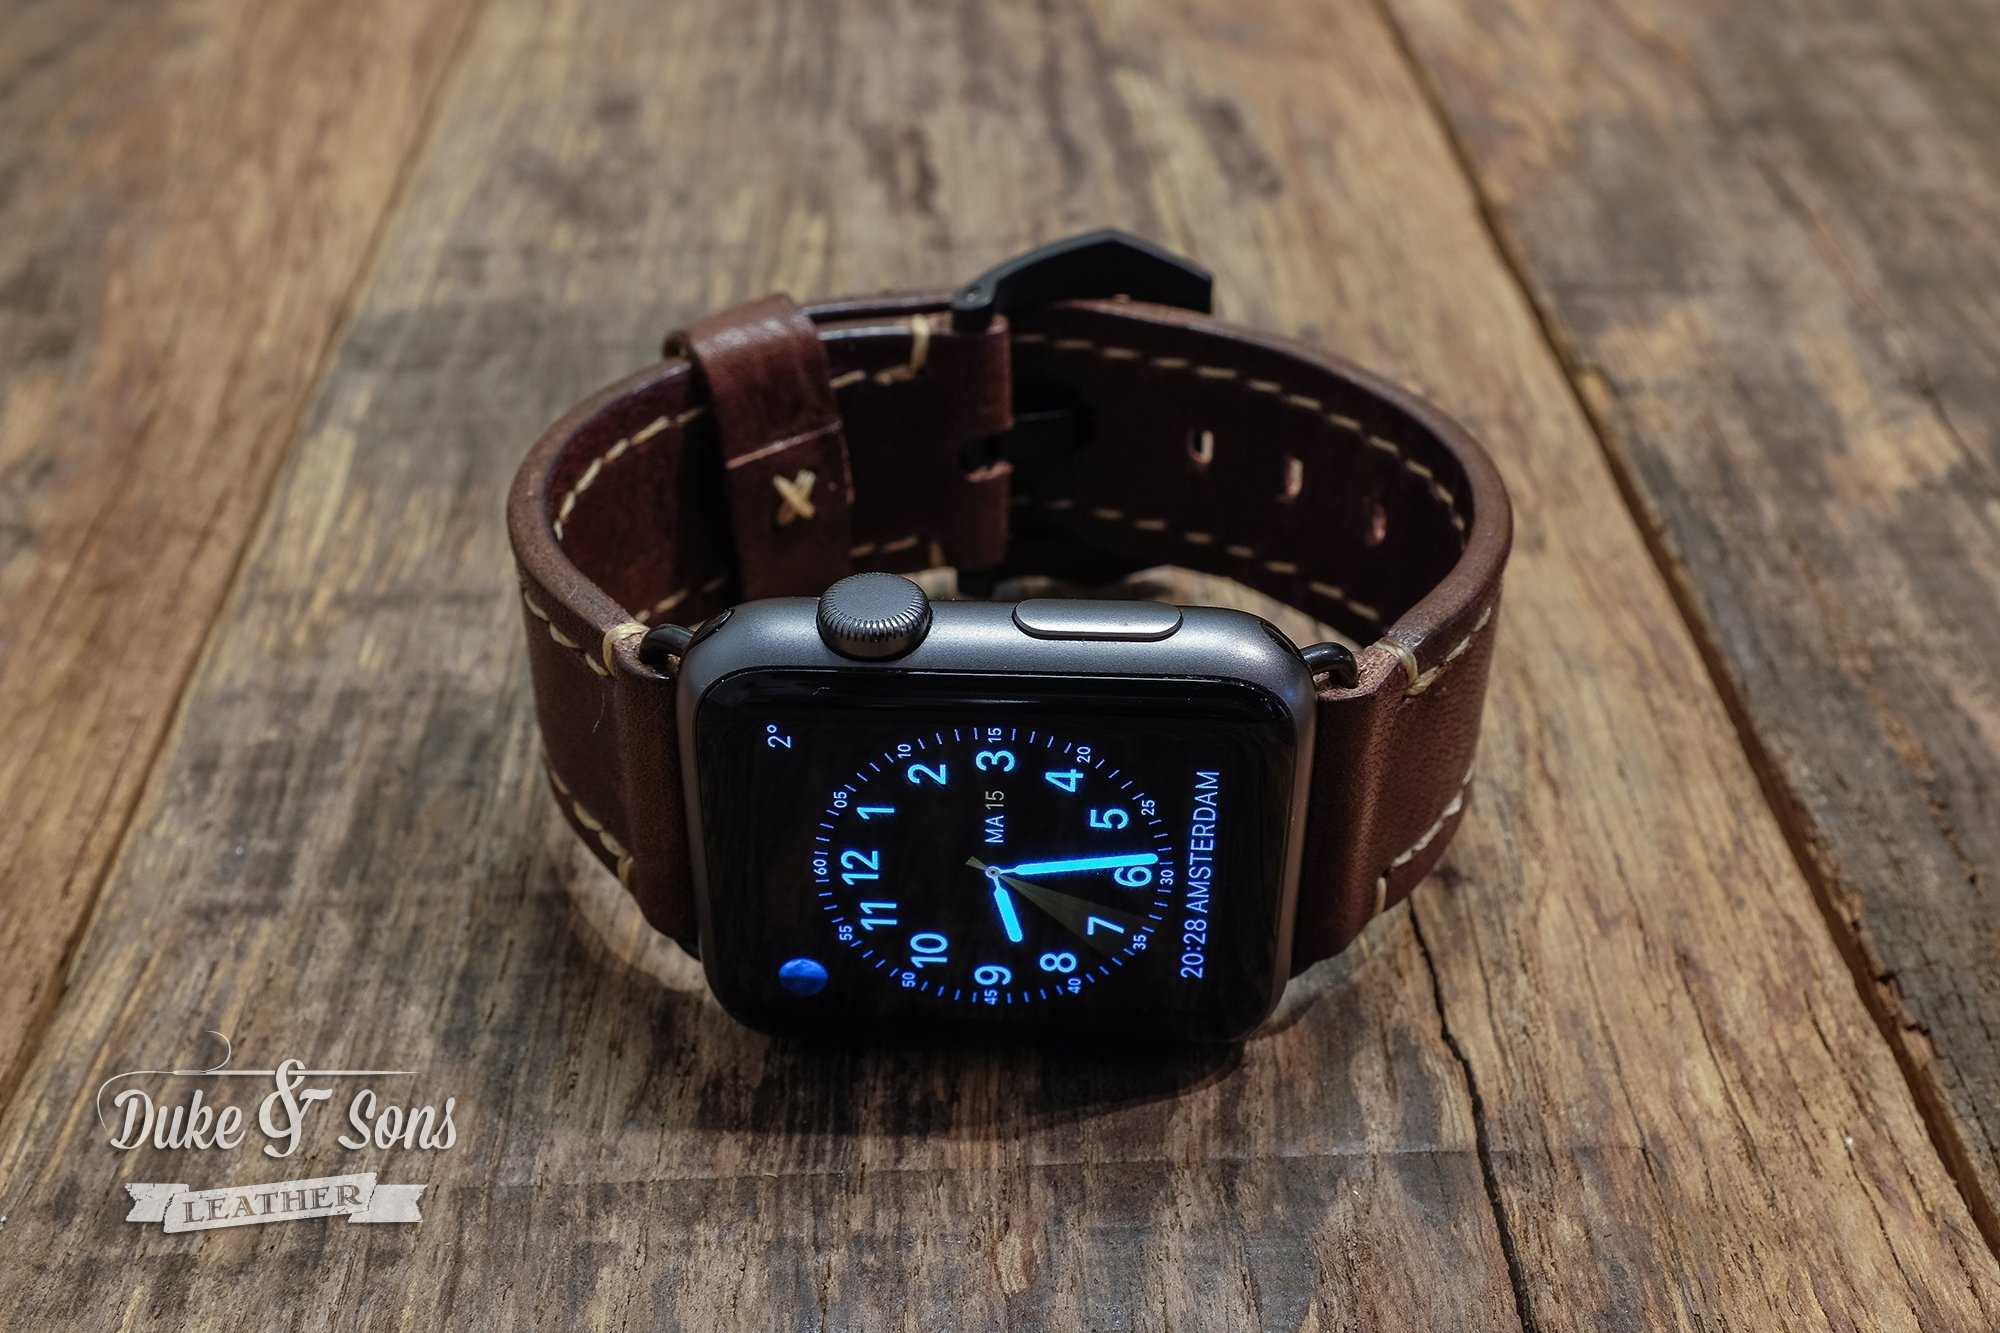 Apple watch strap, full grain A-grade Italian Bulls leather, hand stitched.